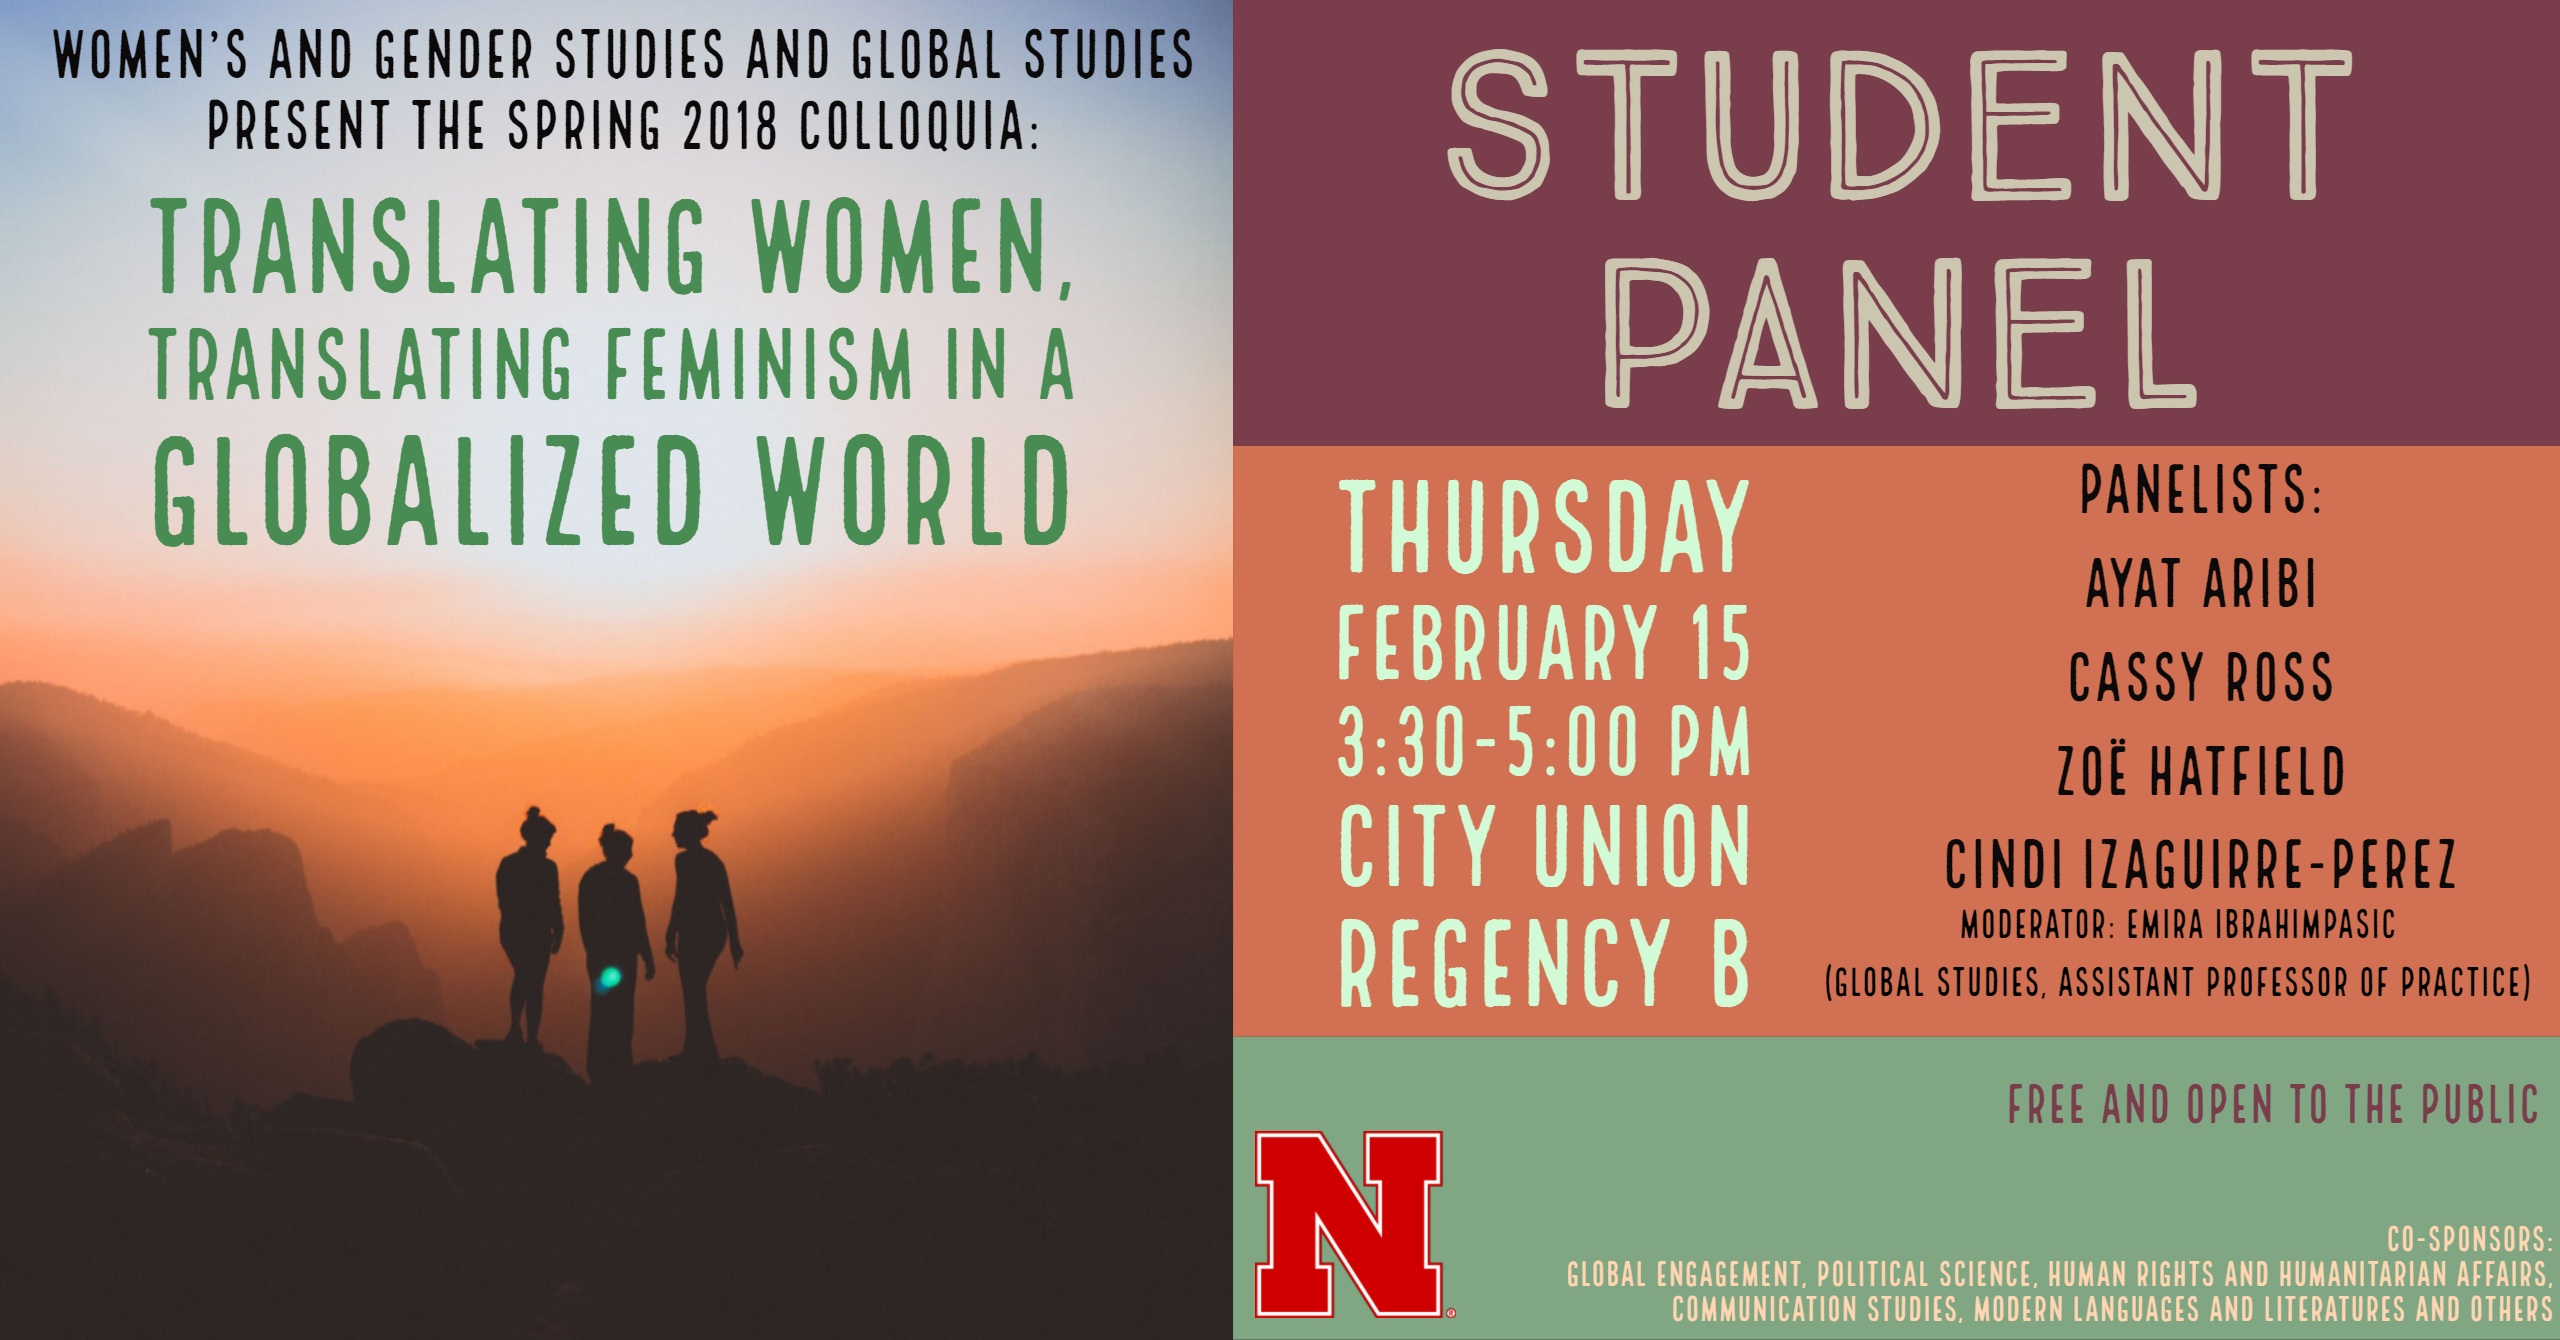 Student Panel: Translating Women, Translating Feminism in a Globalized World